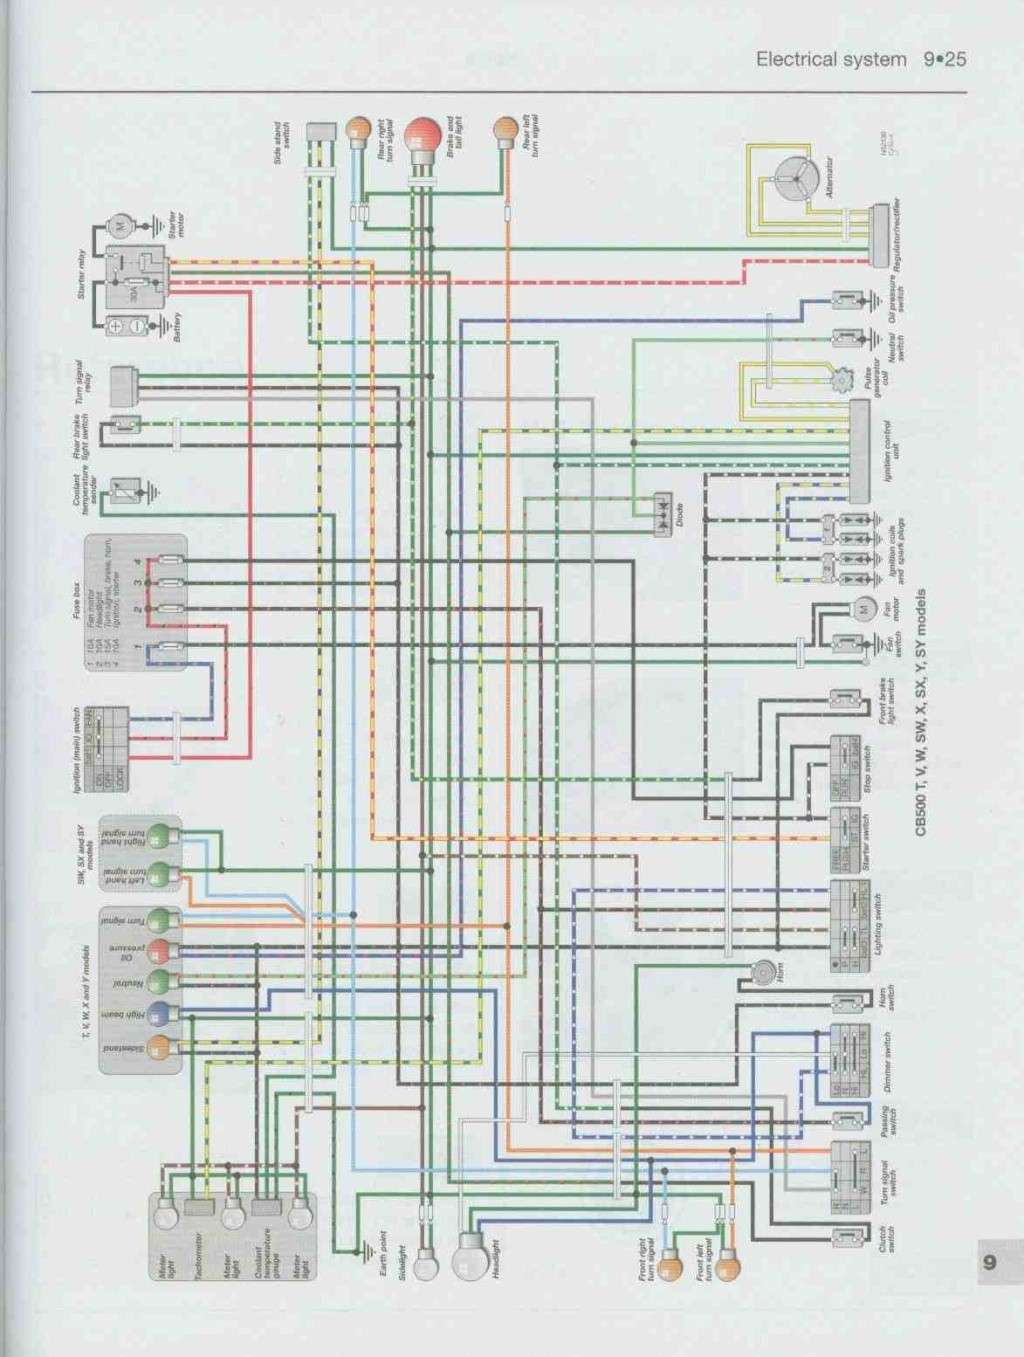 Wiring Diagrams Classic Car Wiring Diagrams Cb500 Wiring Diagram